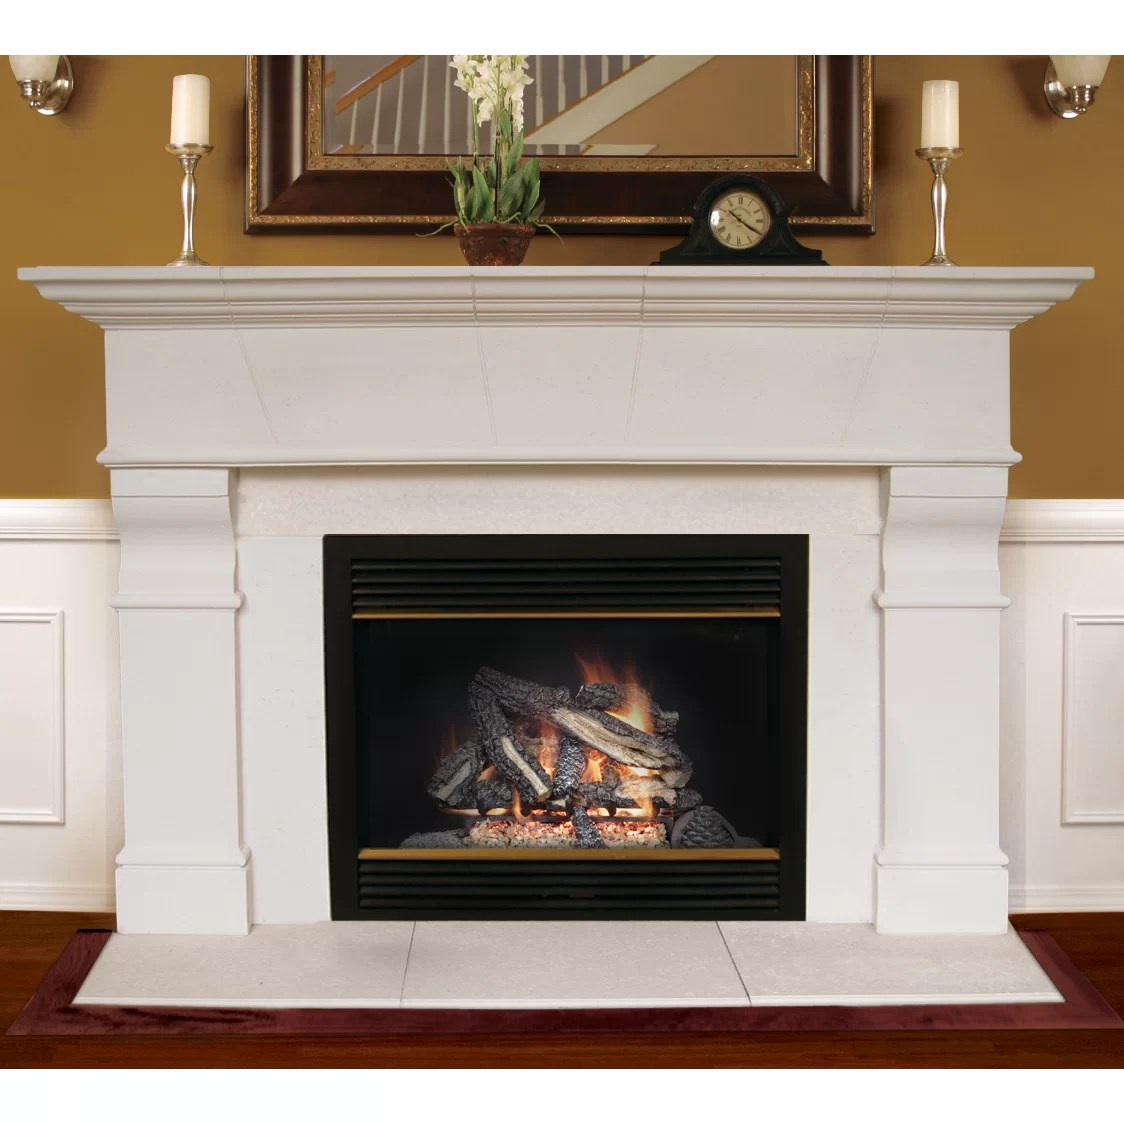 Fireplace Mantel White Americast Architectural Stone Roosevelt Fireplace Mantel